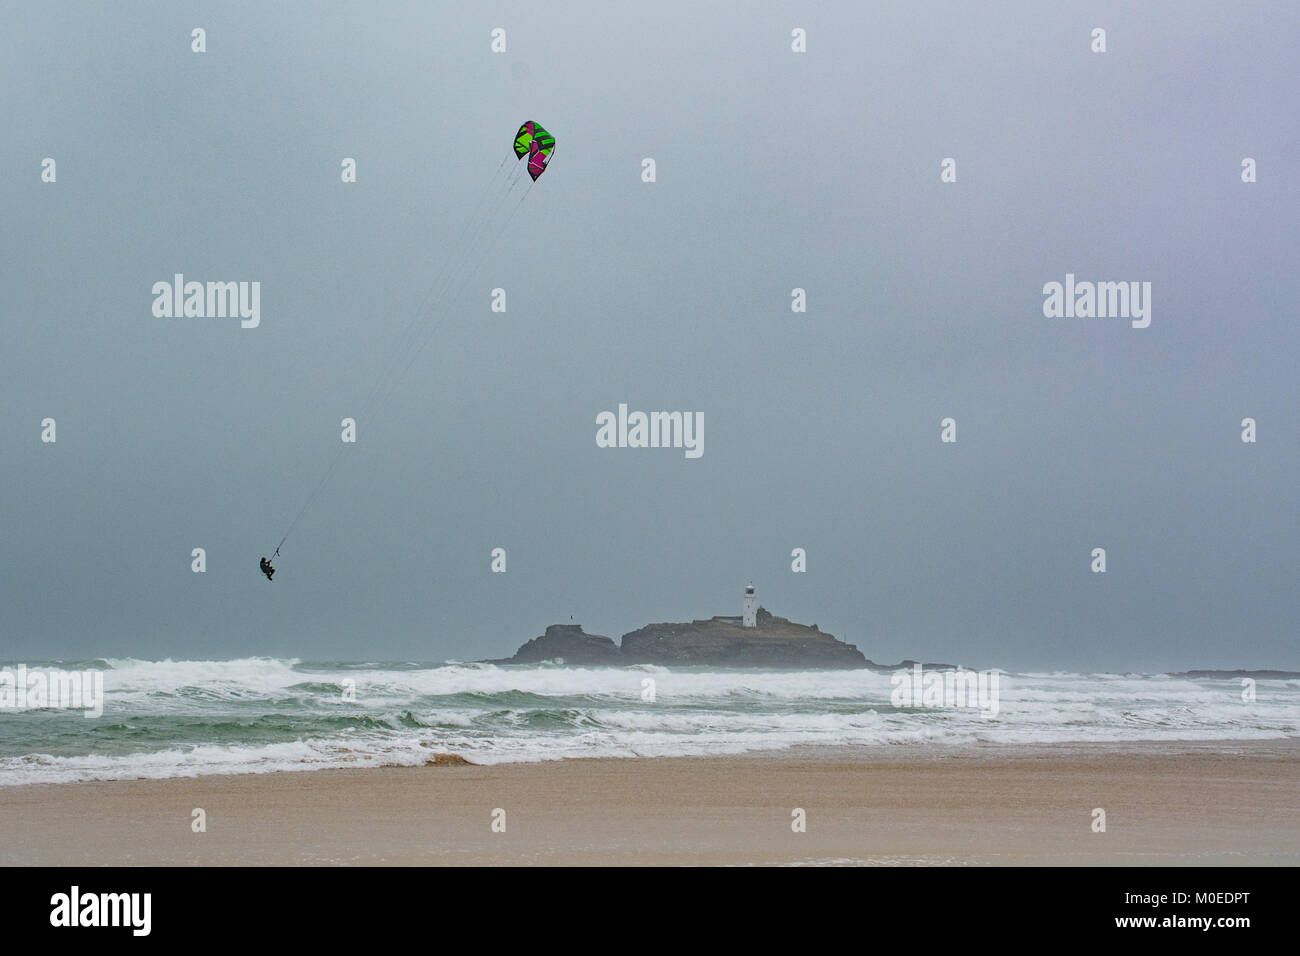 Gwithian, Hayle, Cornwall, UK. 21st Jan 2018. UK Weather. With 50mph gusts this kite surfer was making the most - Stock Image